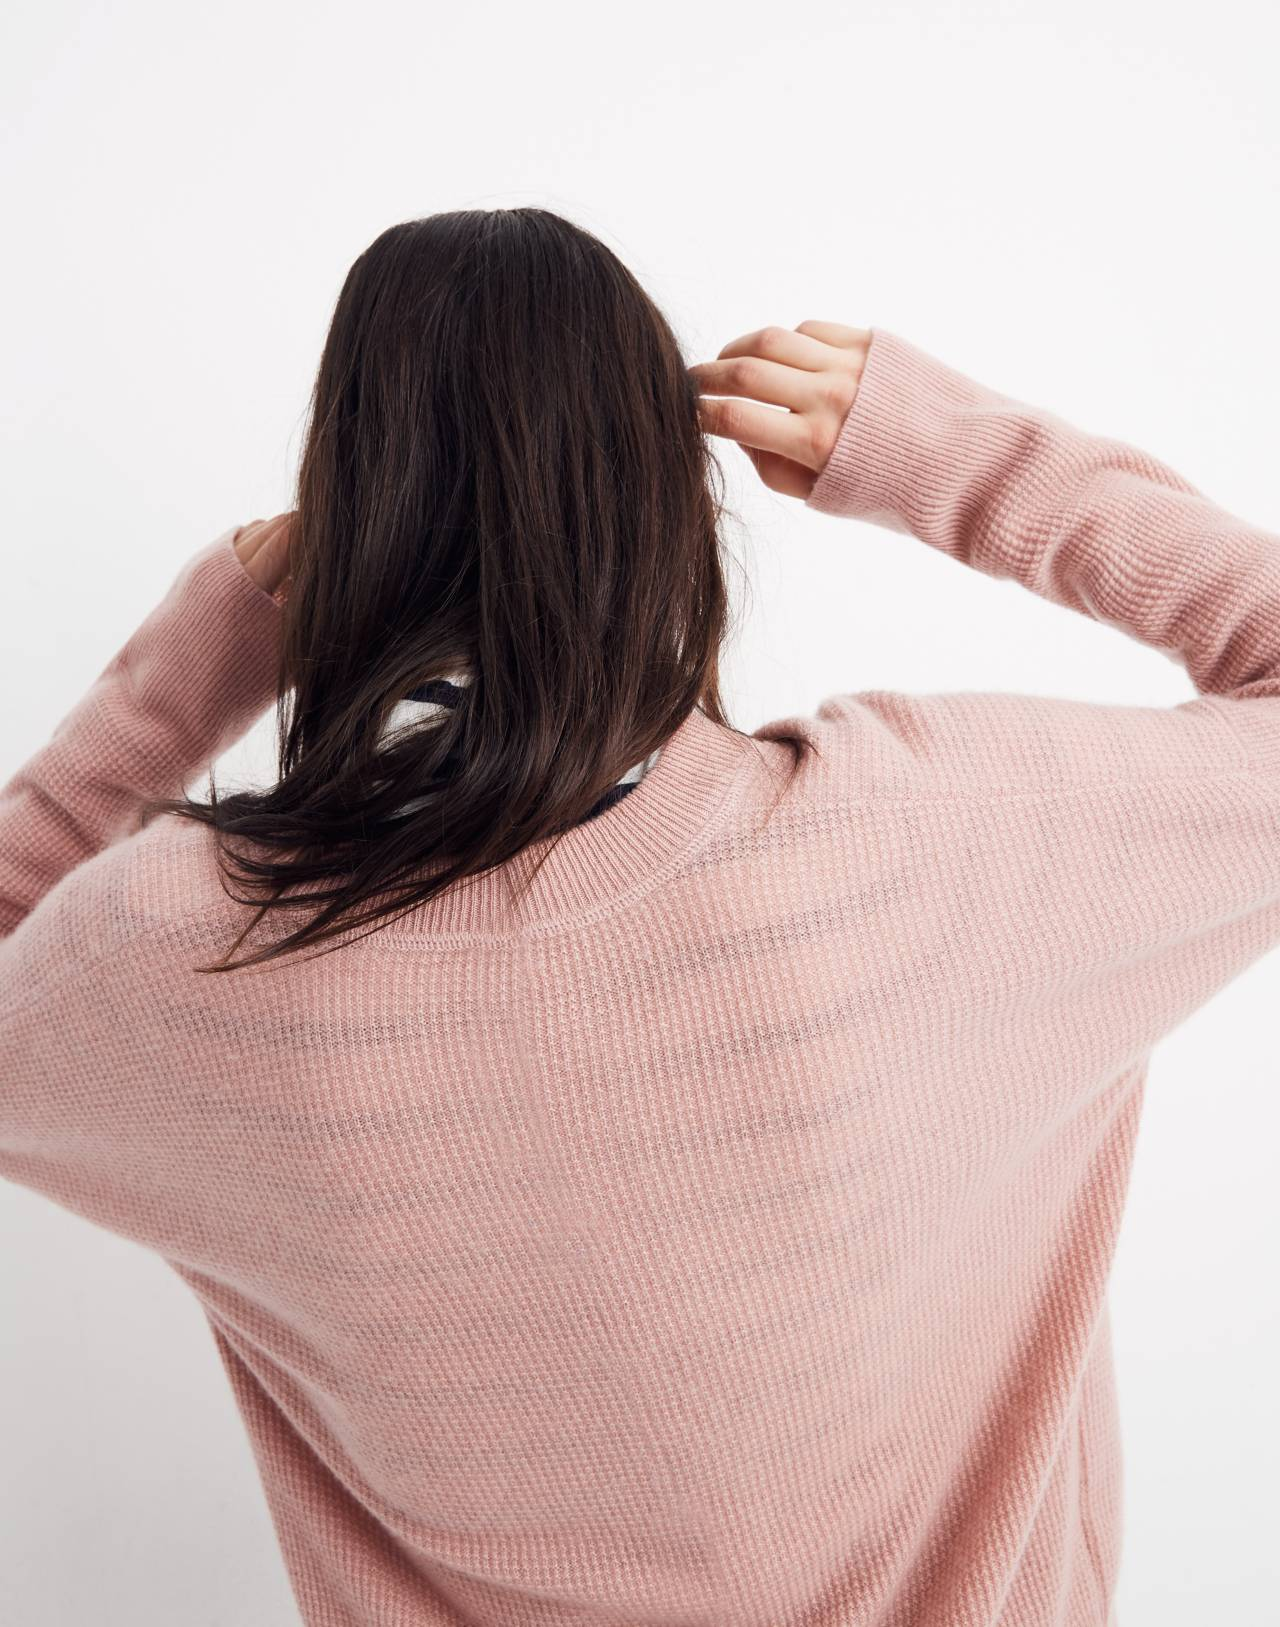 Cashmere Sweatshirt in pink clay image 3